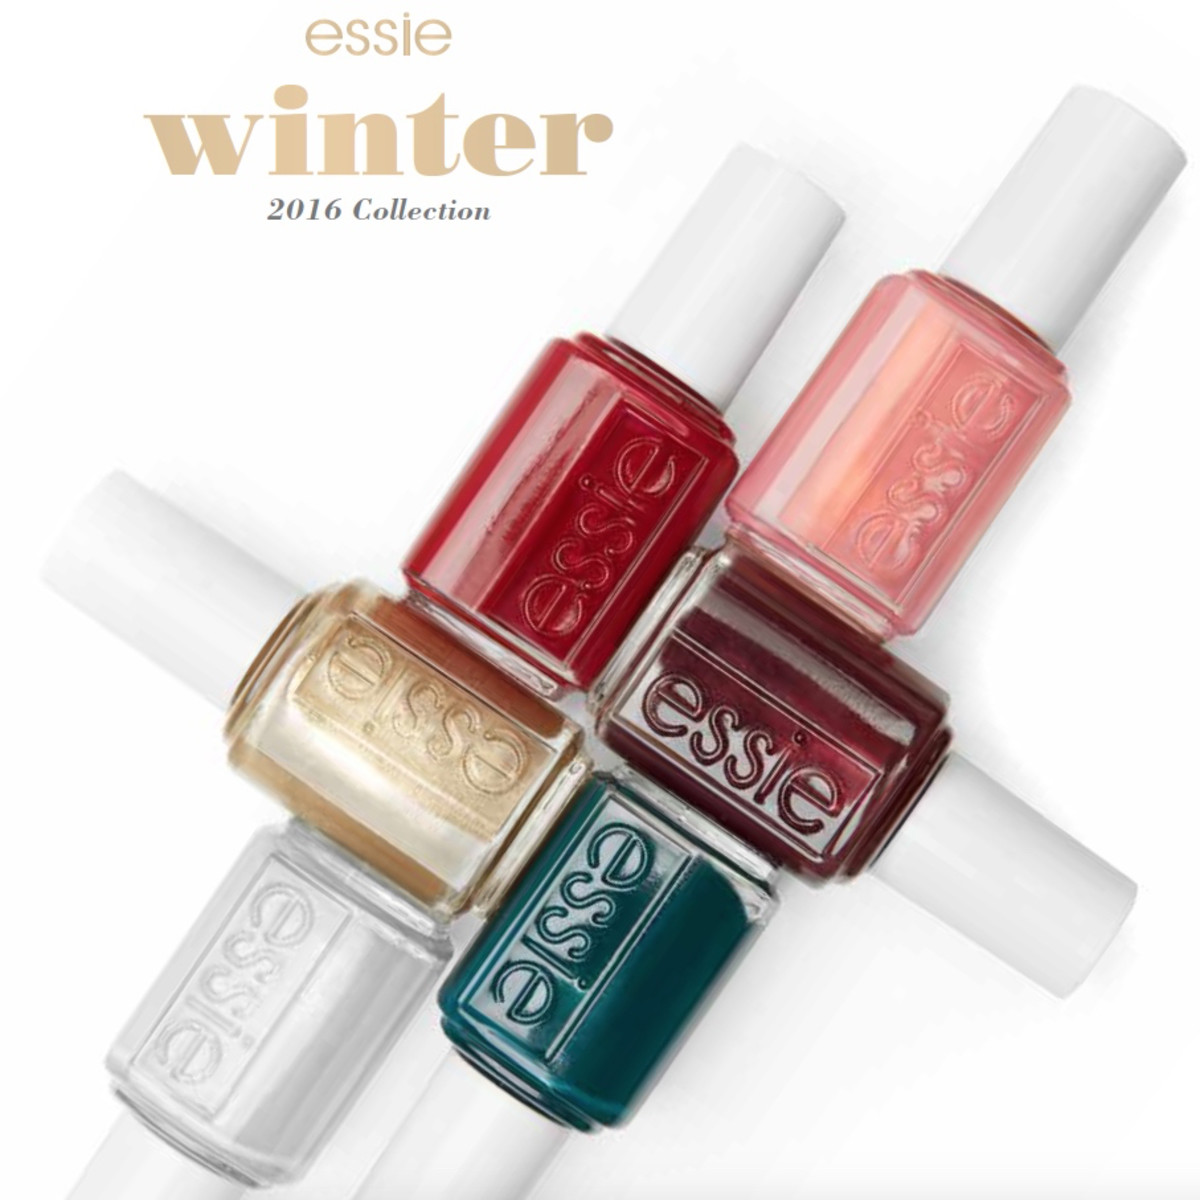 essie winter 2016 collection swatches and review getting